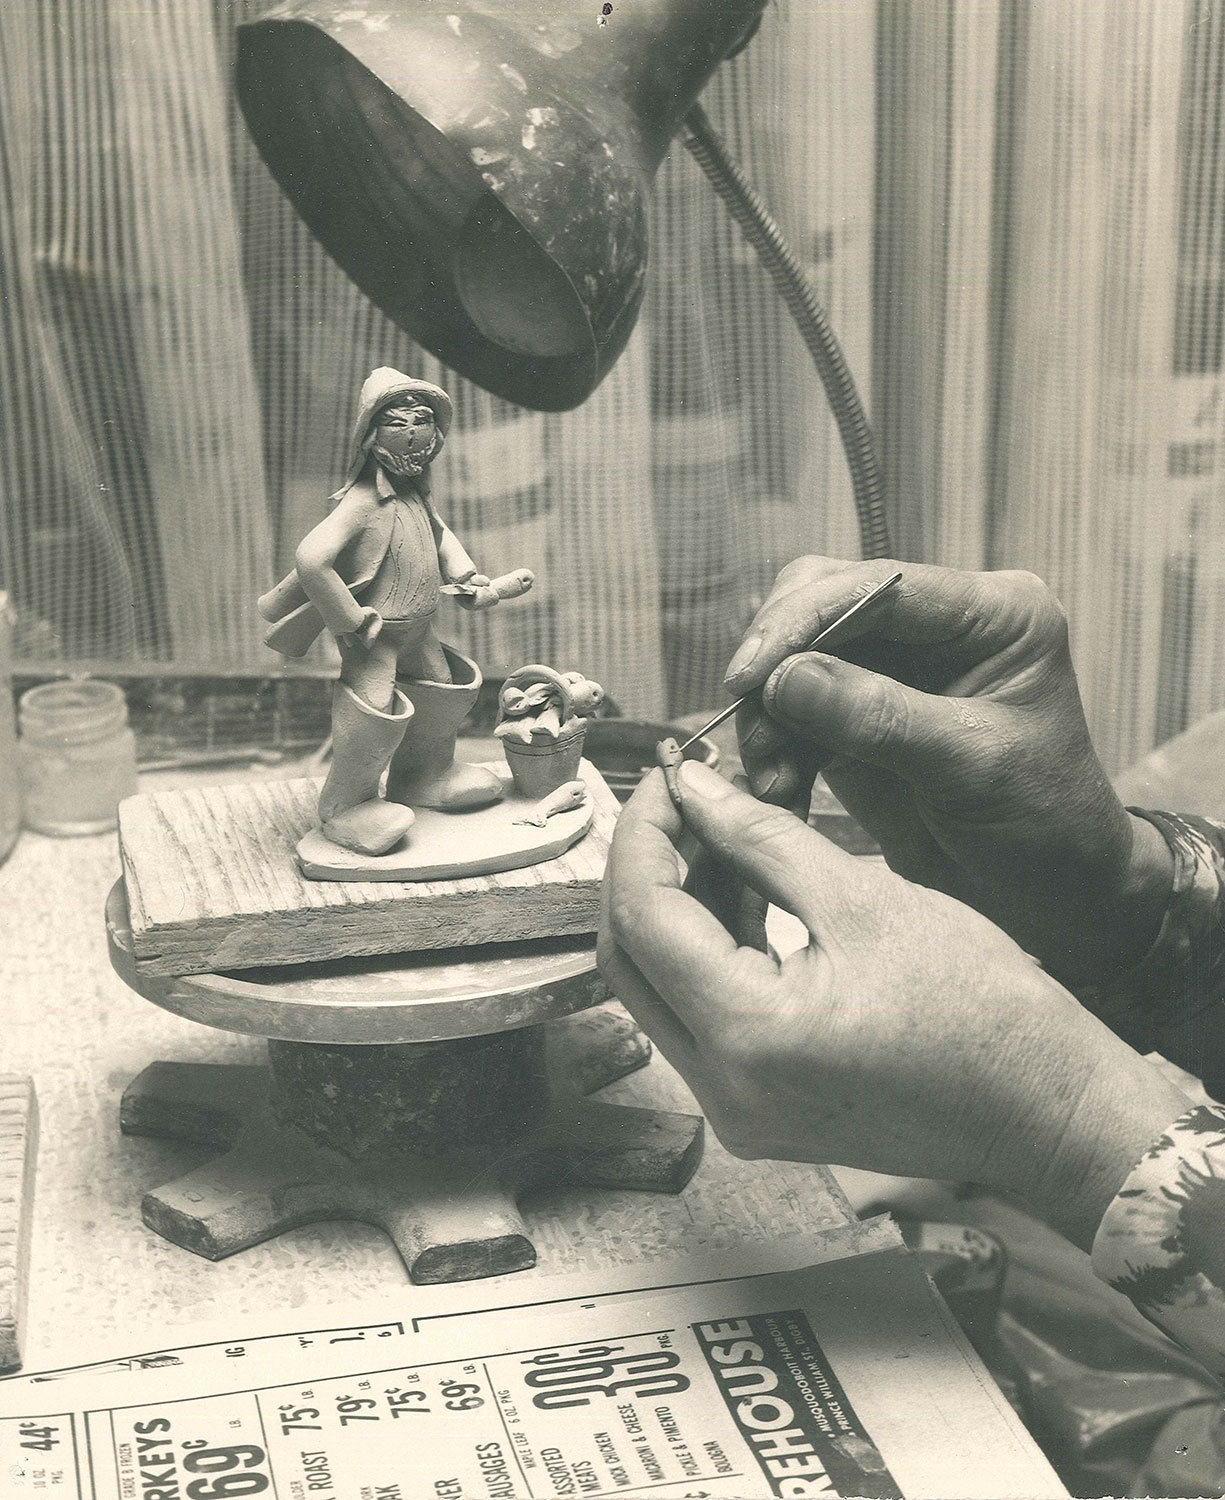 Elfreide's hands making figurine